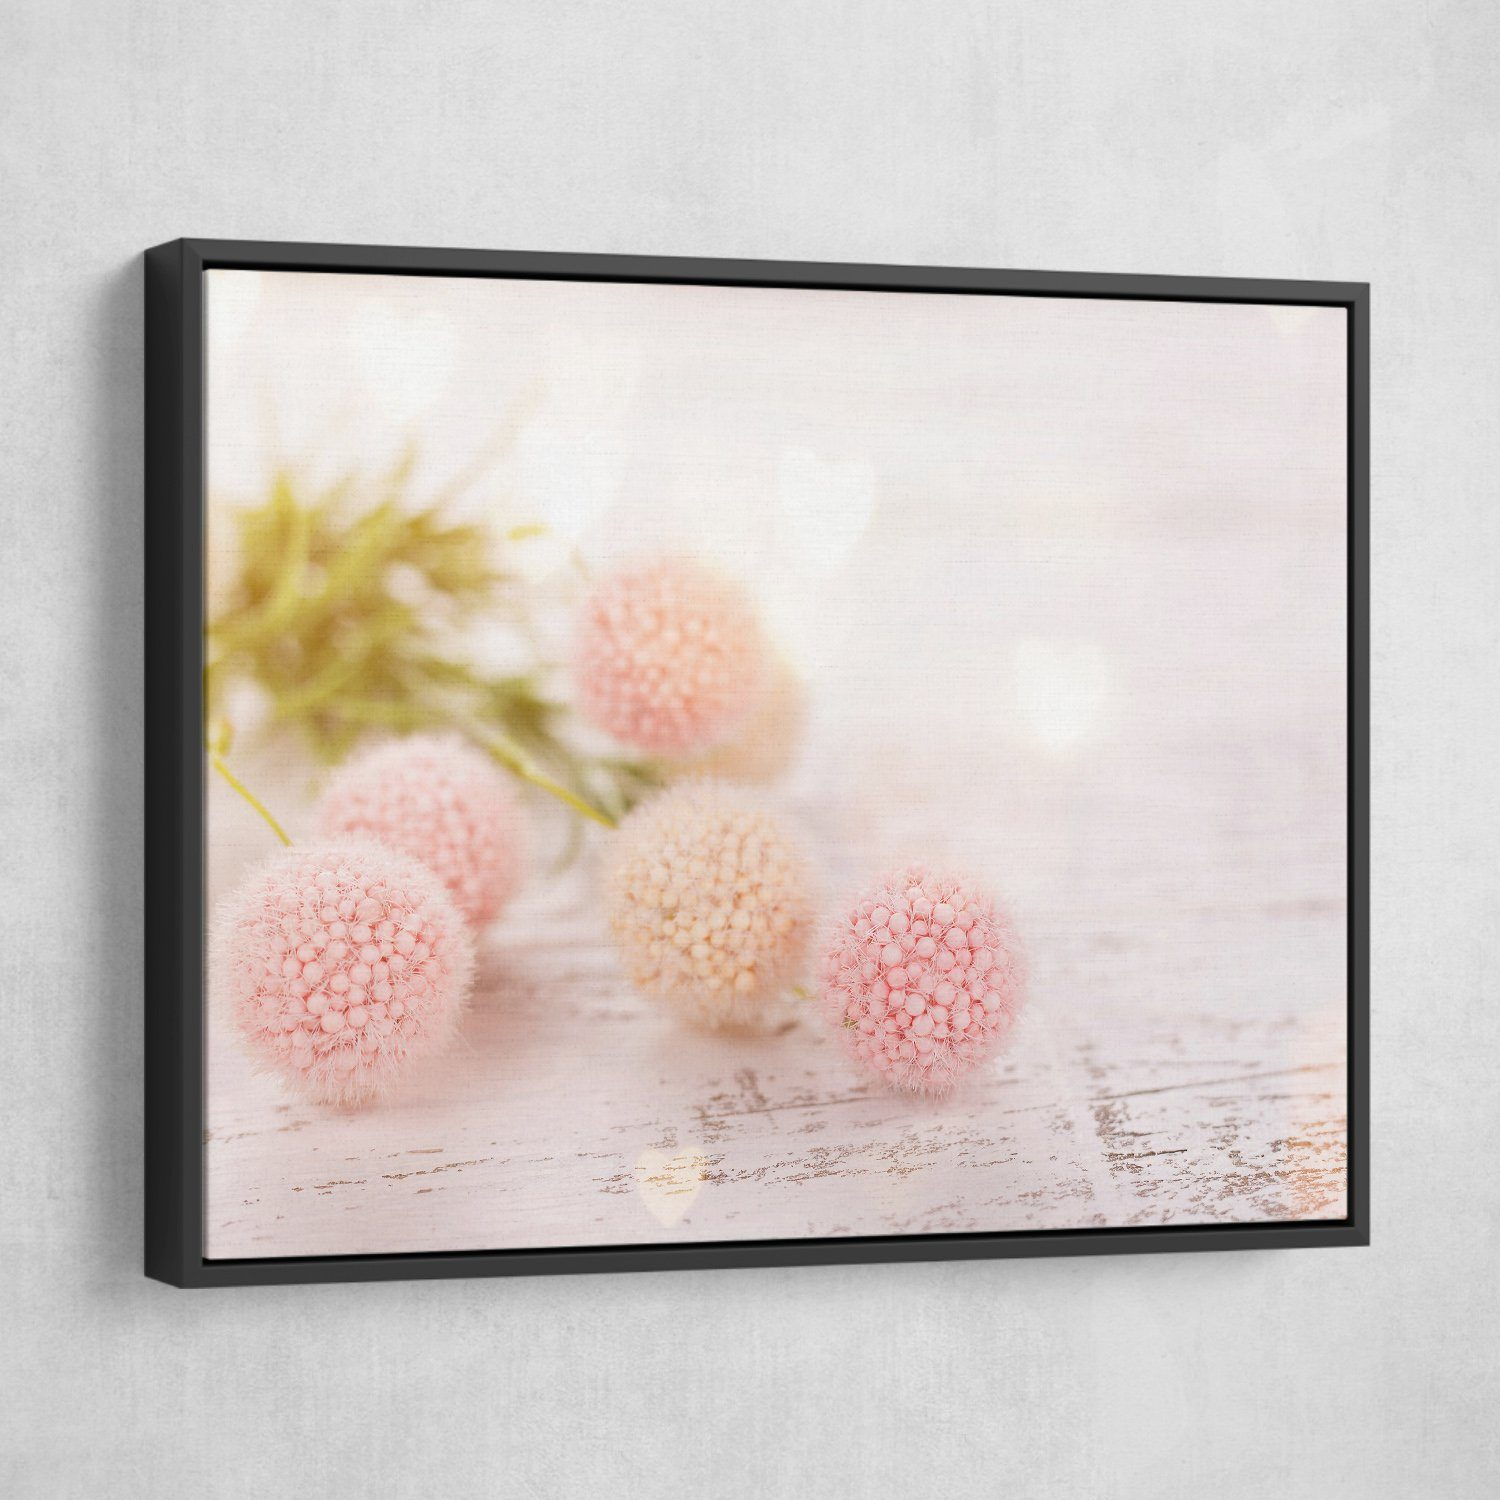 Flower Ball wall art black frame